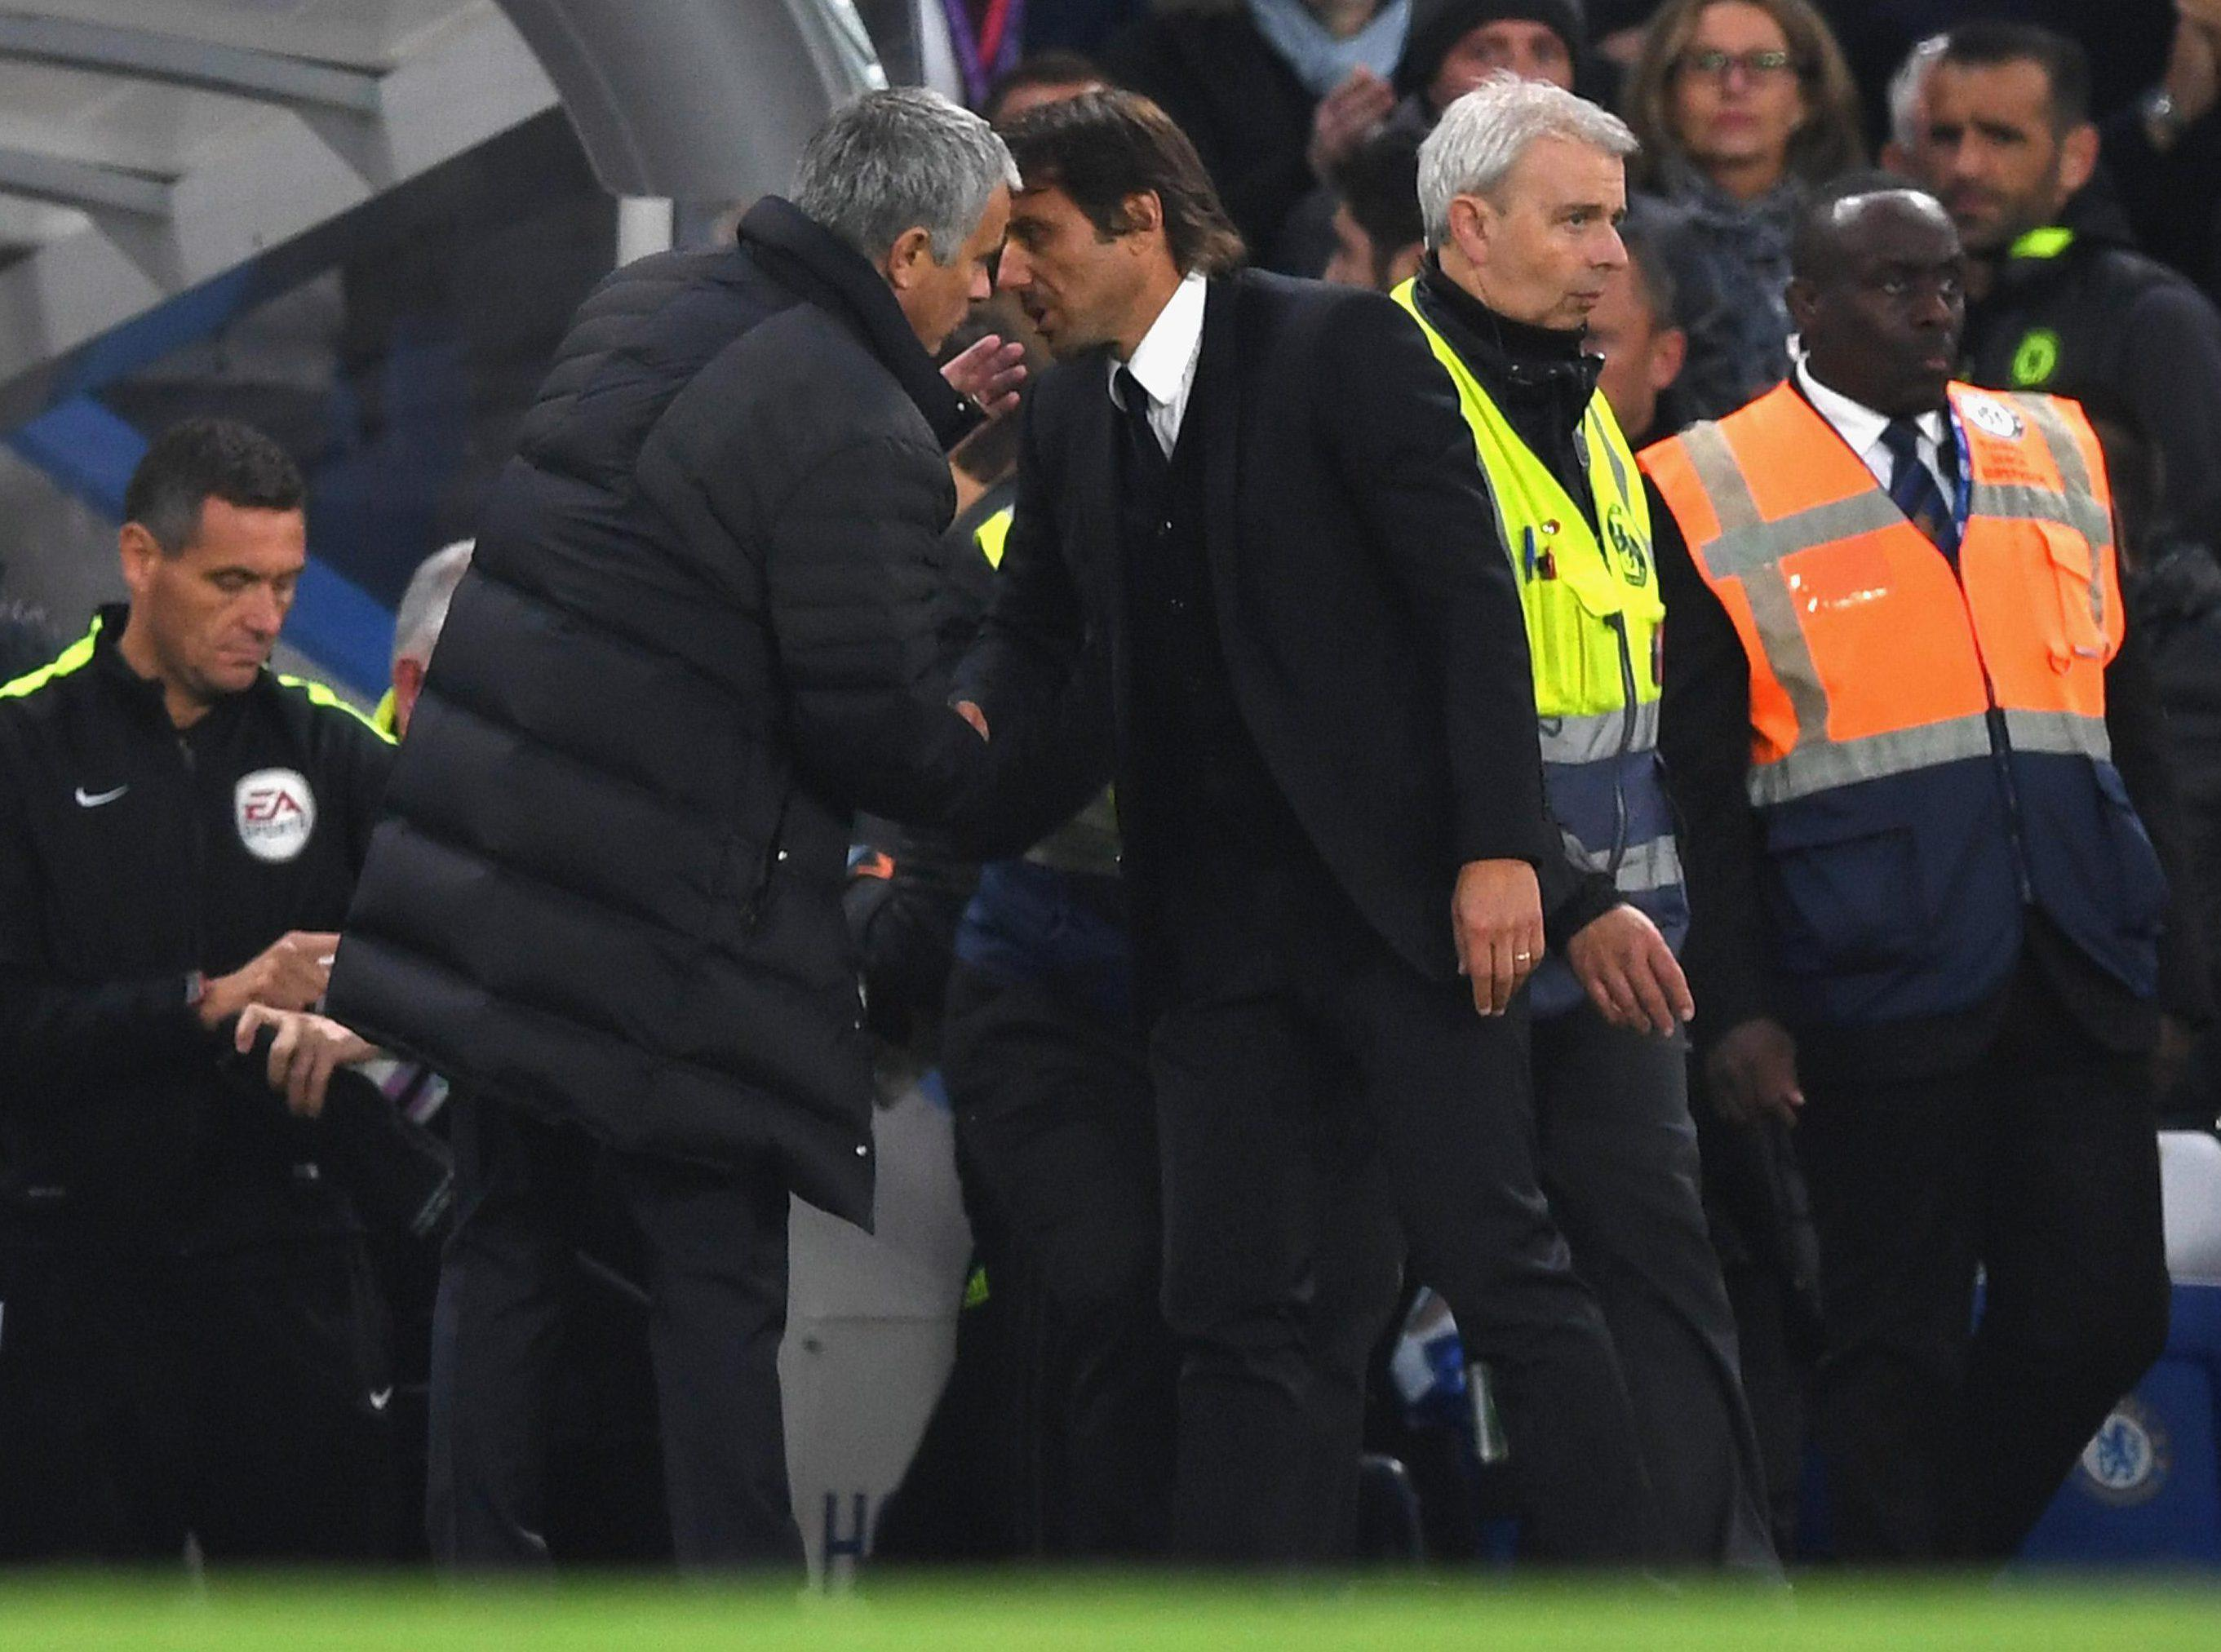 Jose Mourinho shakes hands with Antonio Conte during Manchester United against Chelsea this season